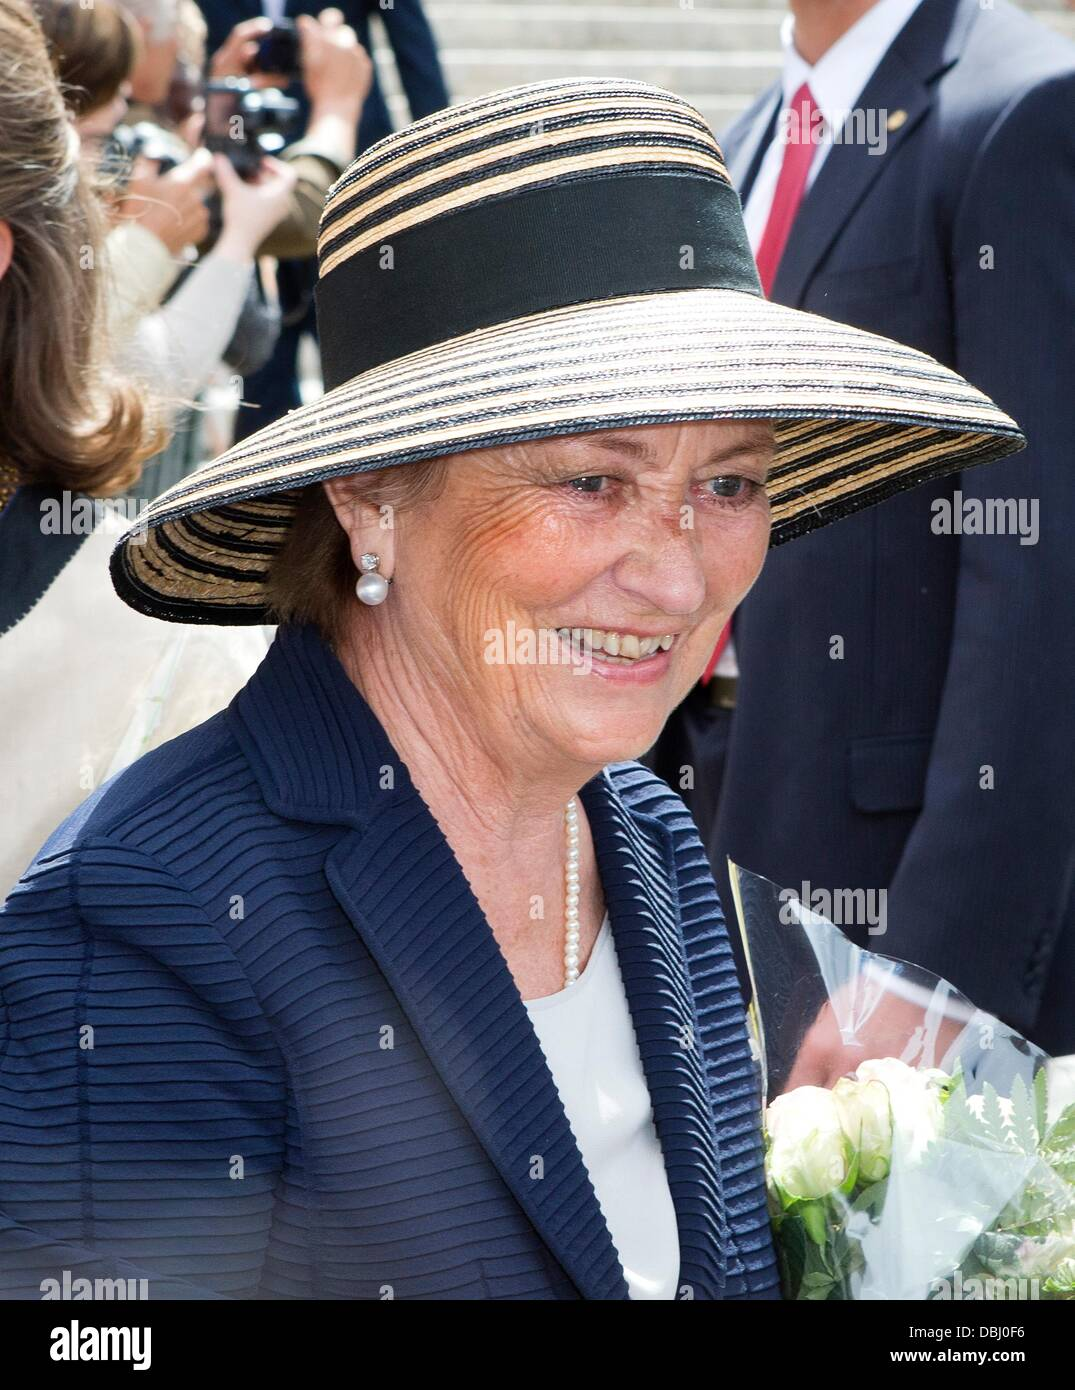 7c30b64849b Queen Paola Of Belgium Photos   Queen Paola Of Belgium Images - Alamy